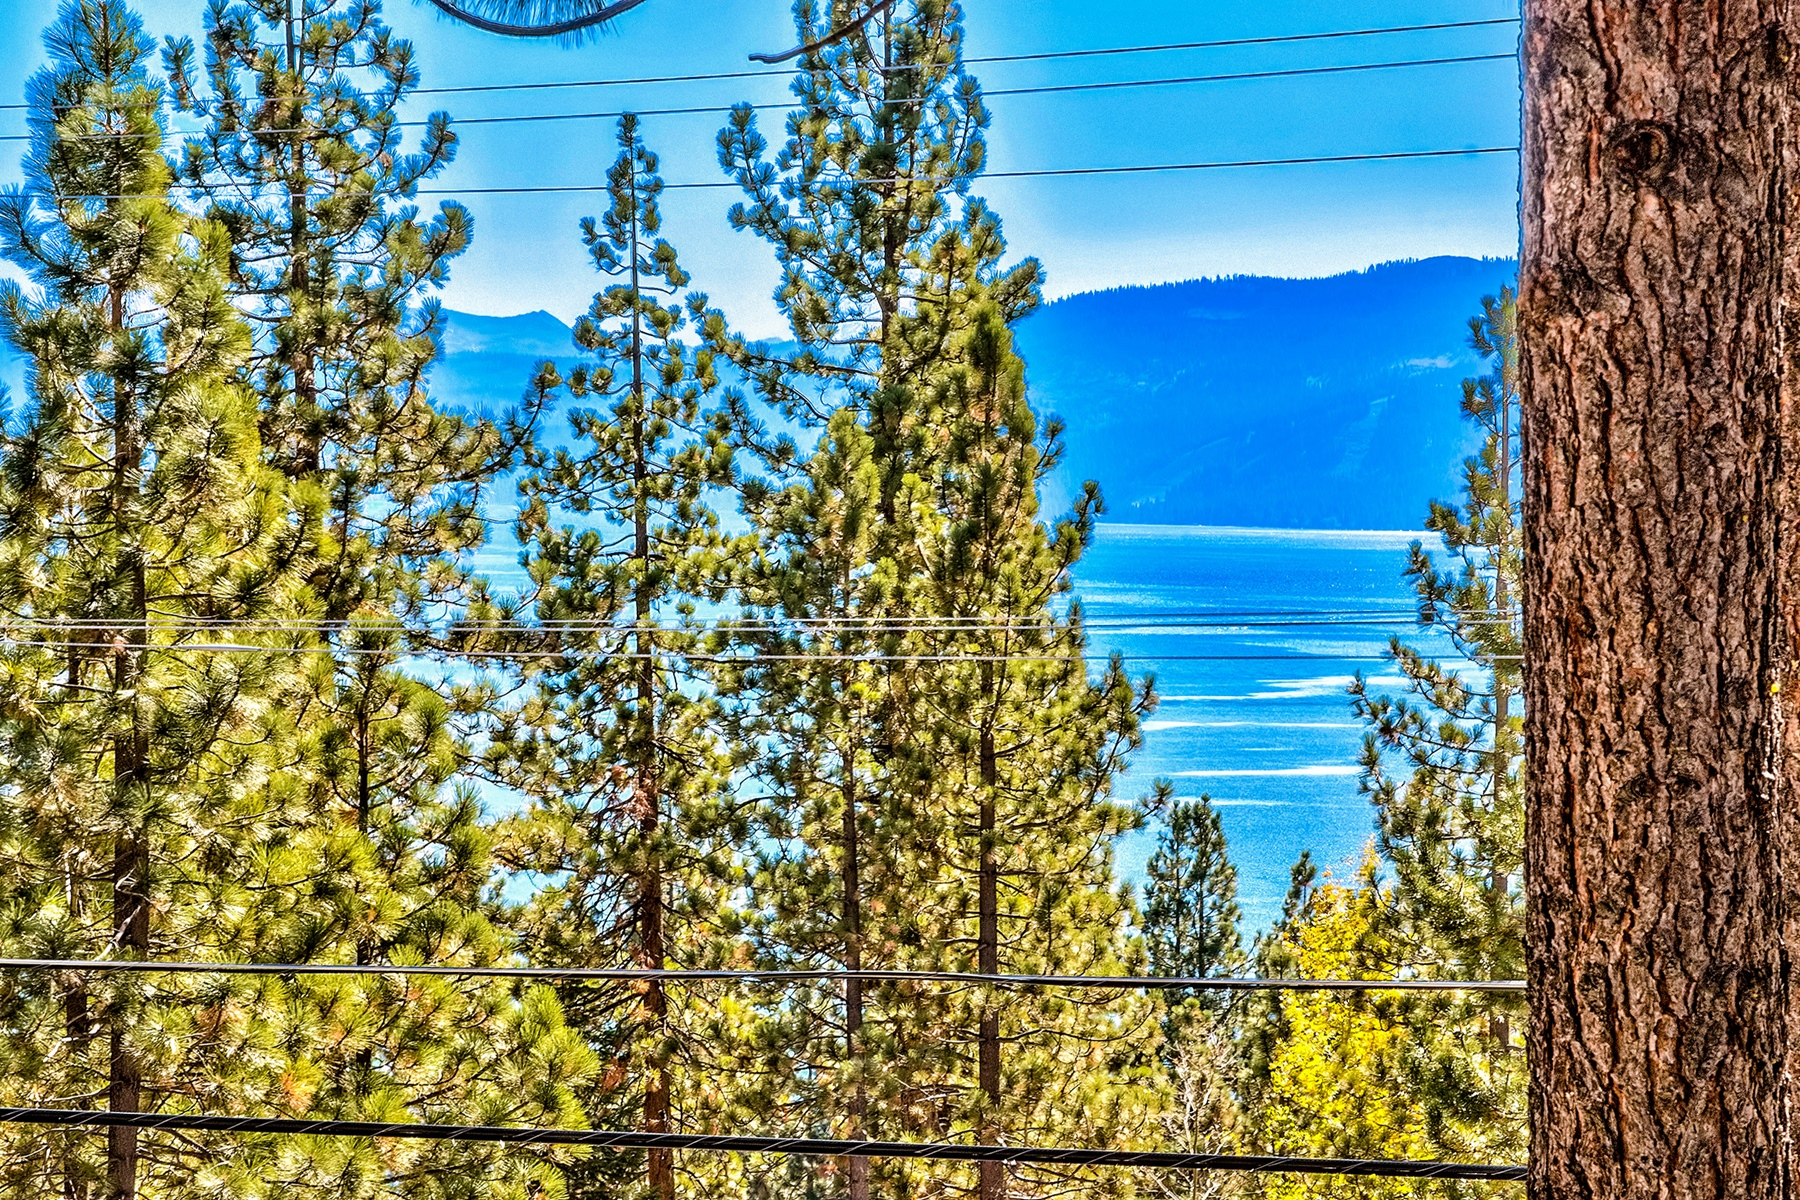 Additional photo for property listing at 64 Observation Drive, Tahoe City, CA 96145 64 Observation Drive Tahoe City, California 96145 United States